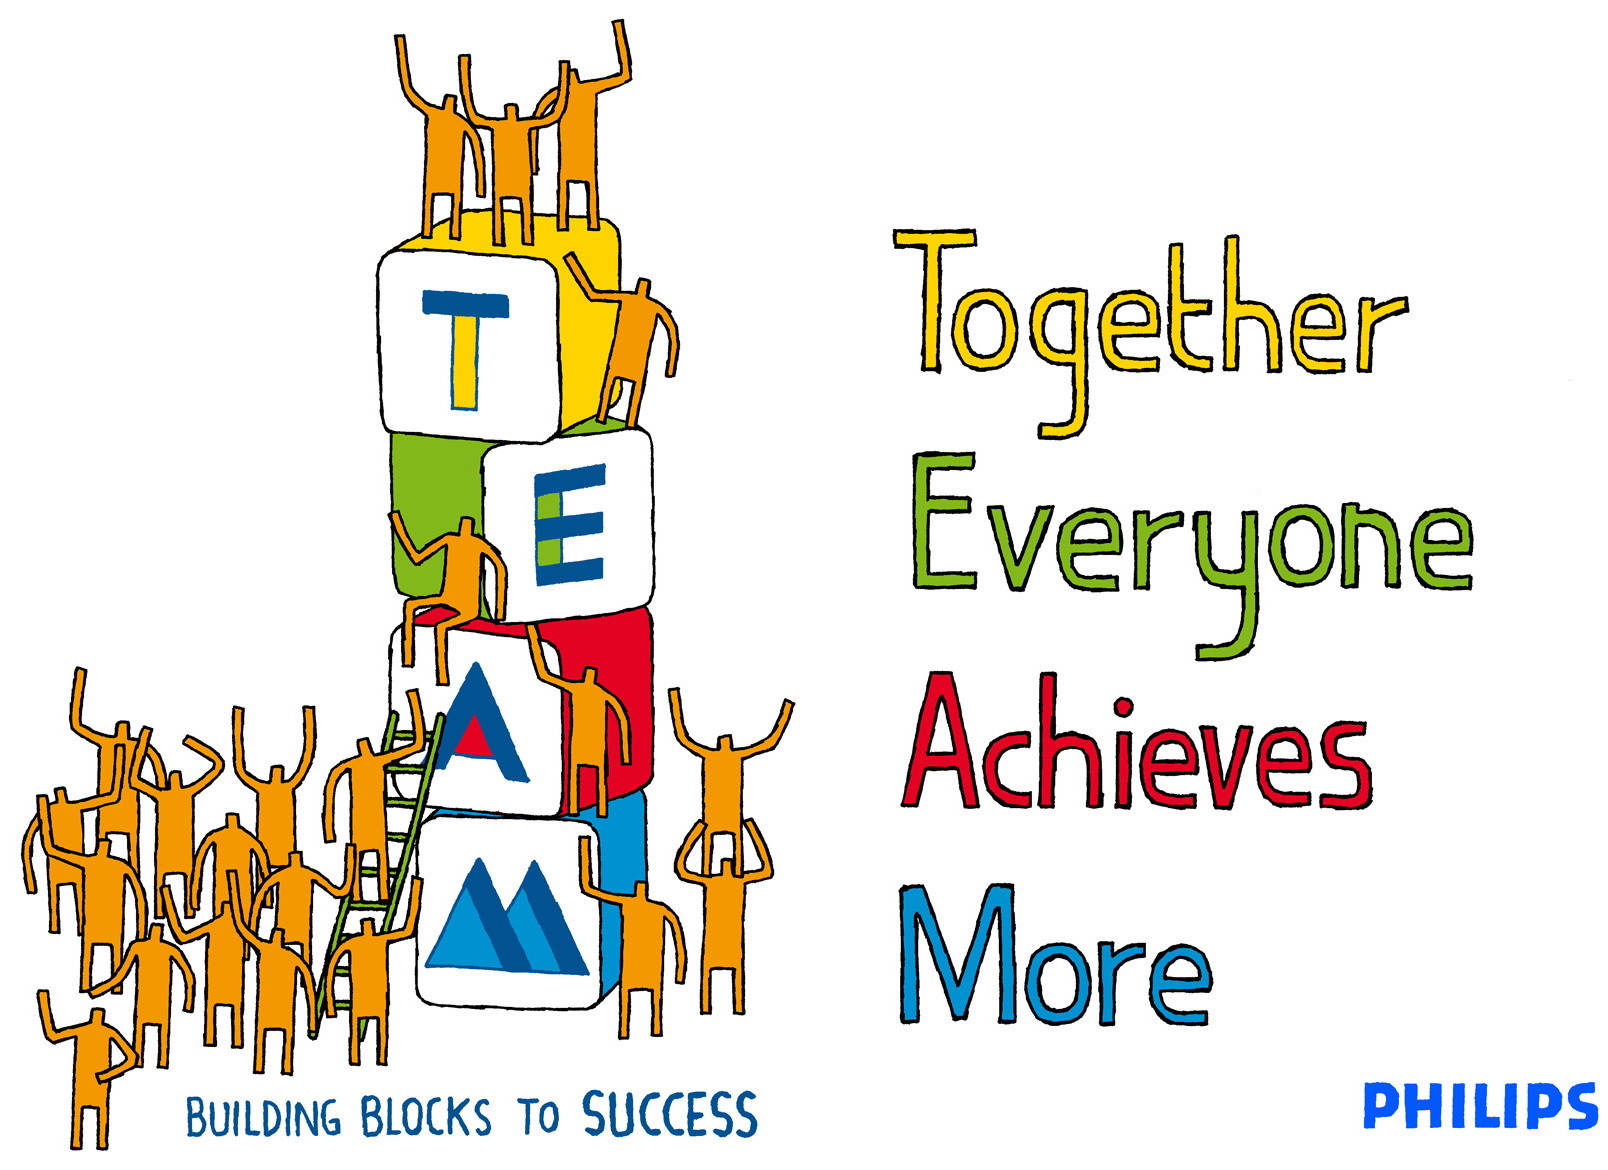 Together Everyone Achieves More / Philips